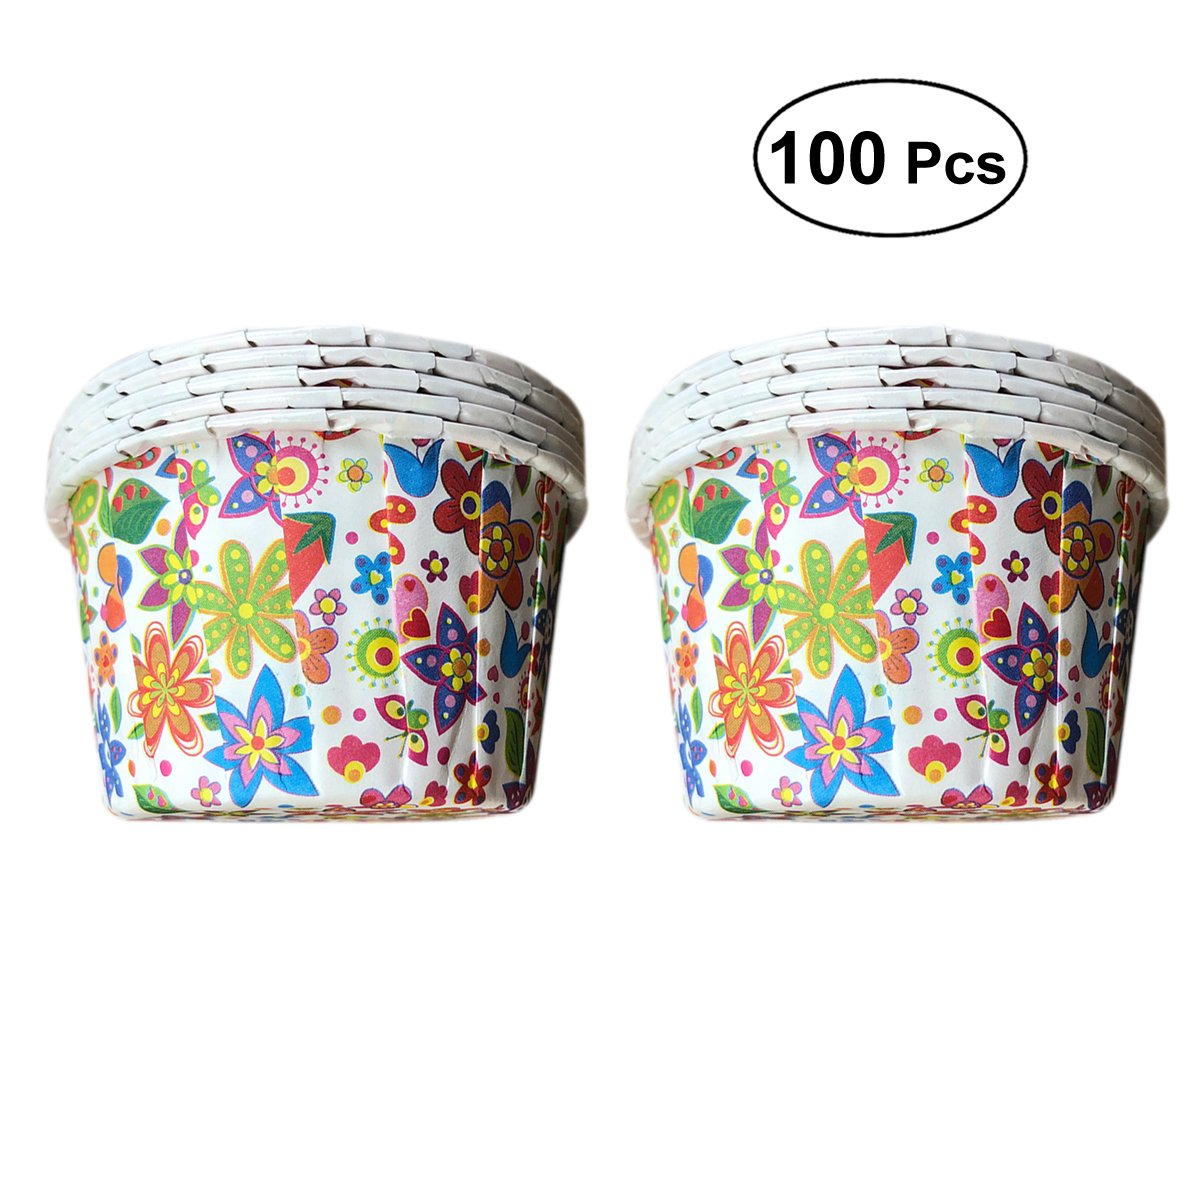 BESTONZON 100pcs Flower Pattern Cupcake Paper Baking Cups Muffin Wrapper Liners Cake Cases Mould